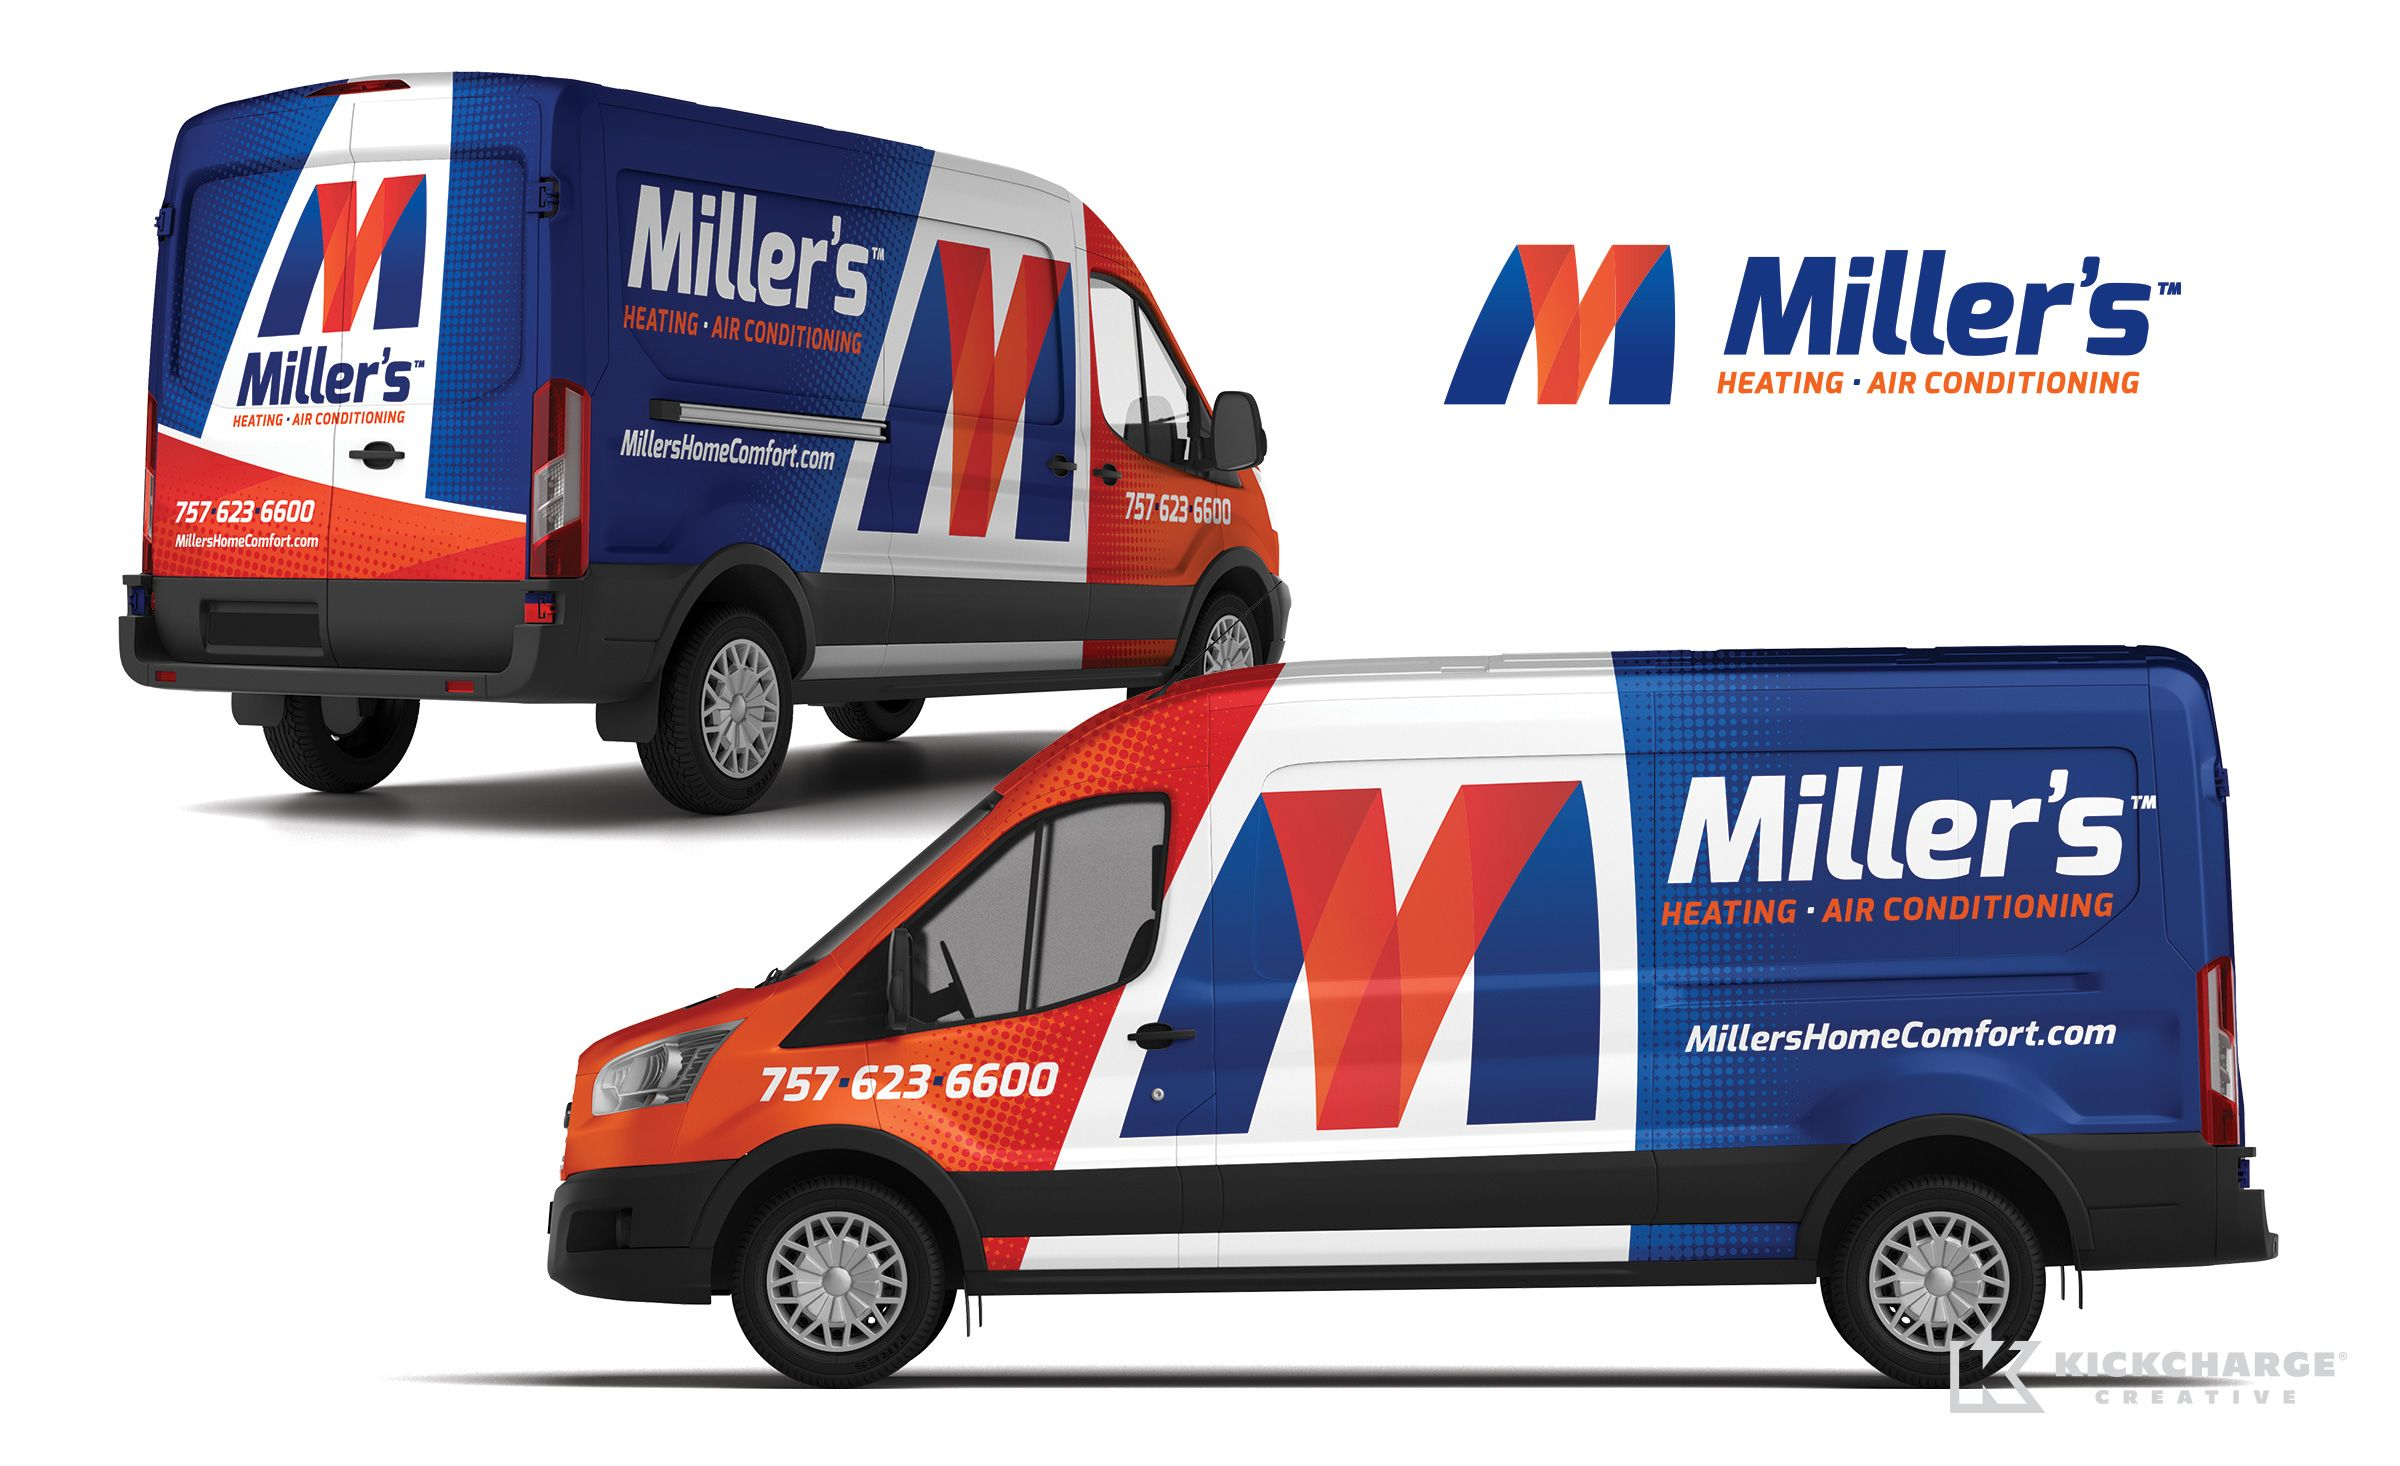 Truck wrap design for Miller's Heating & Air Conditioning